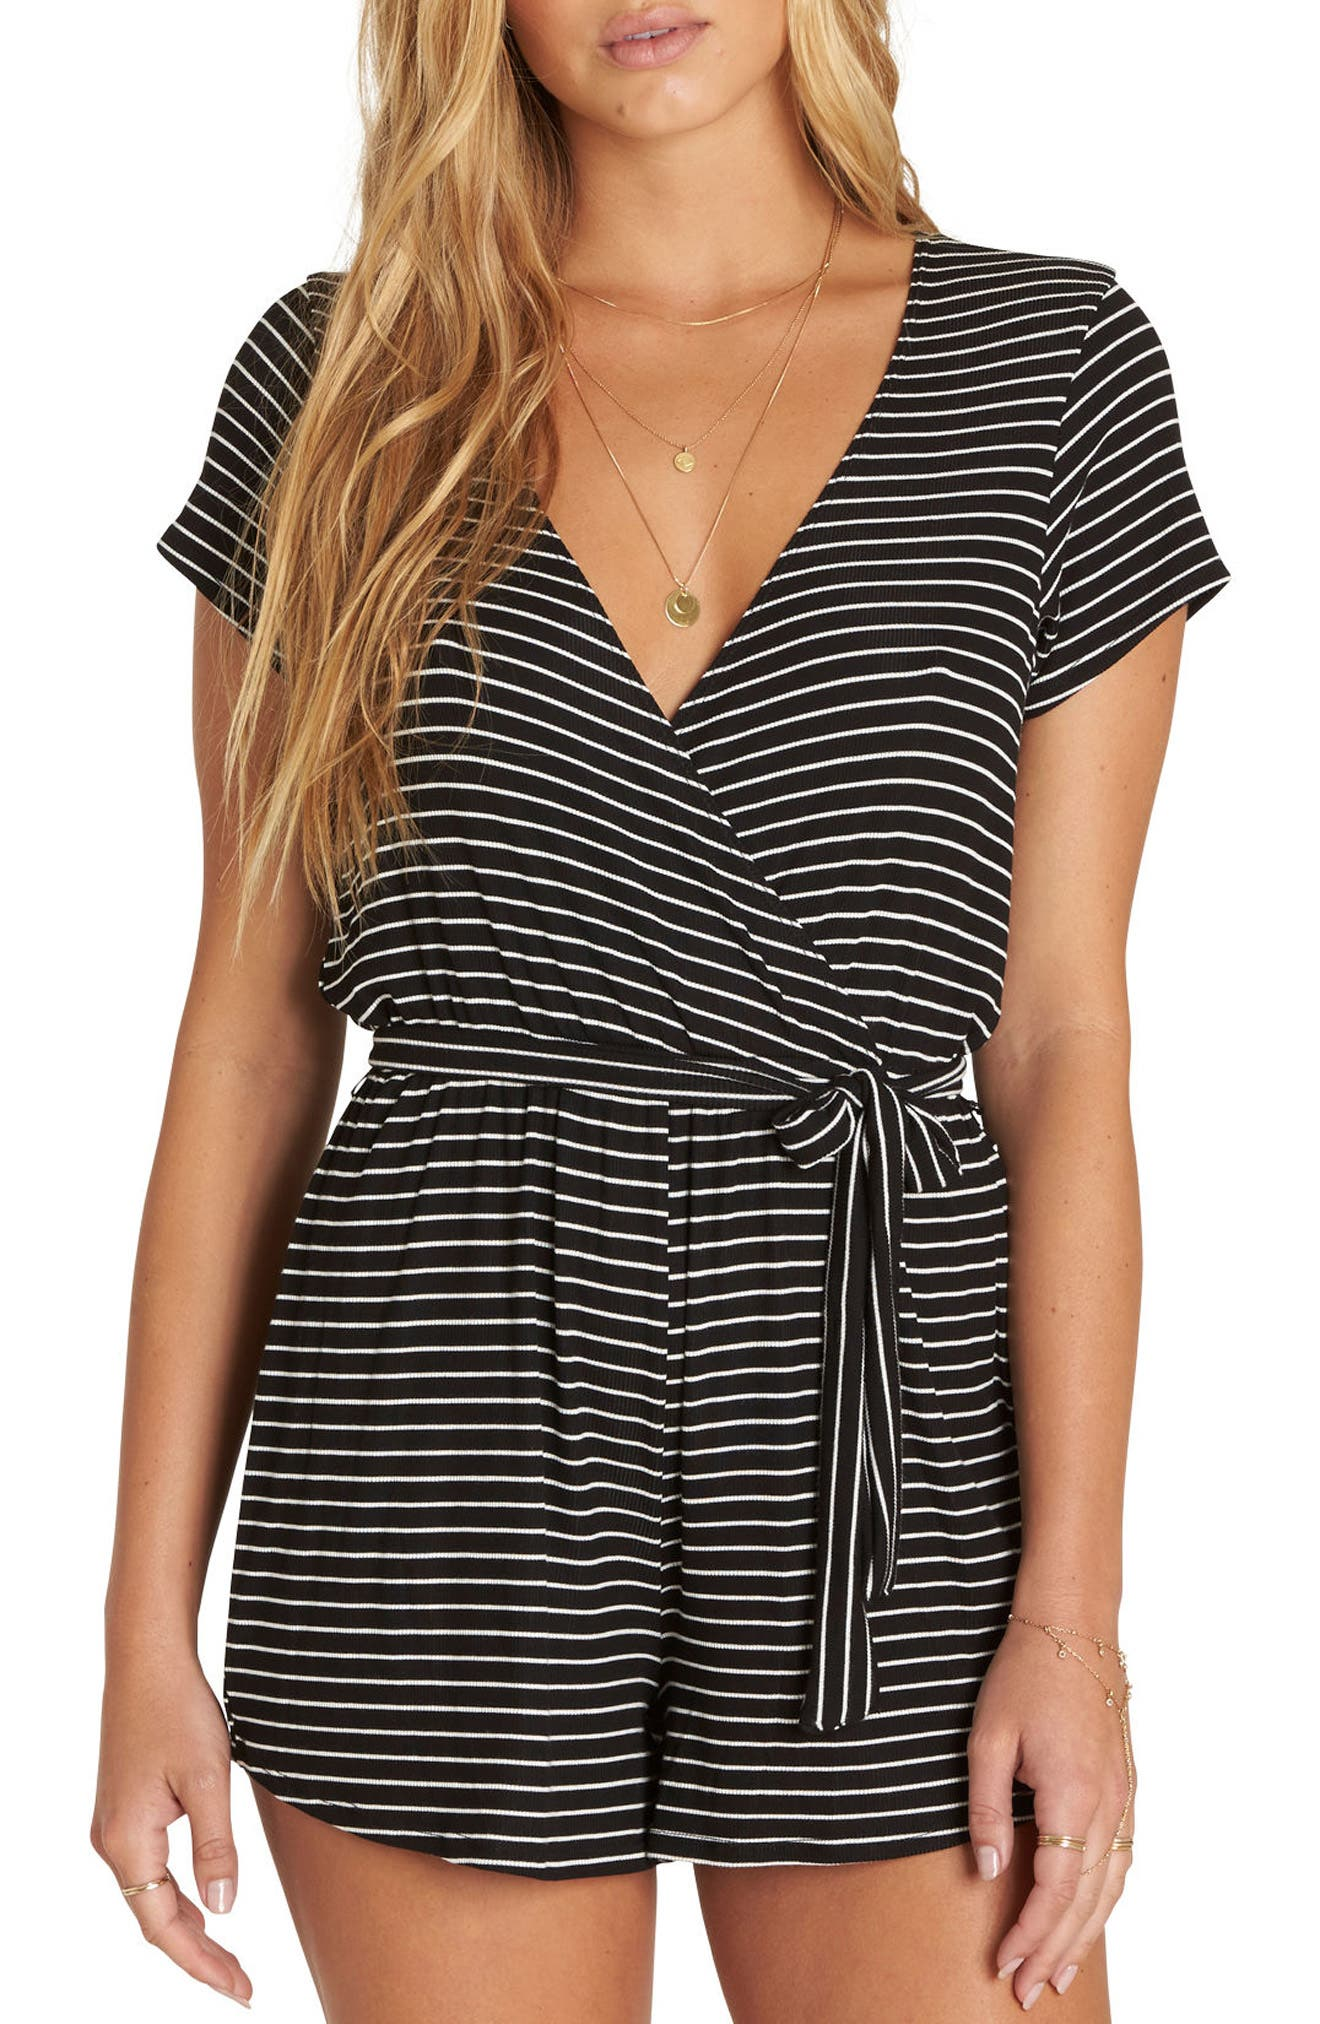 Romp Stop Stripe Surplice Romper,                         Main,                         color, Black